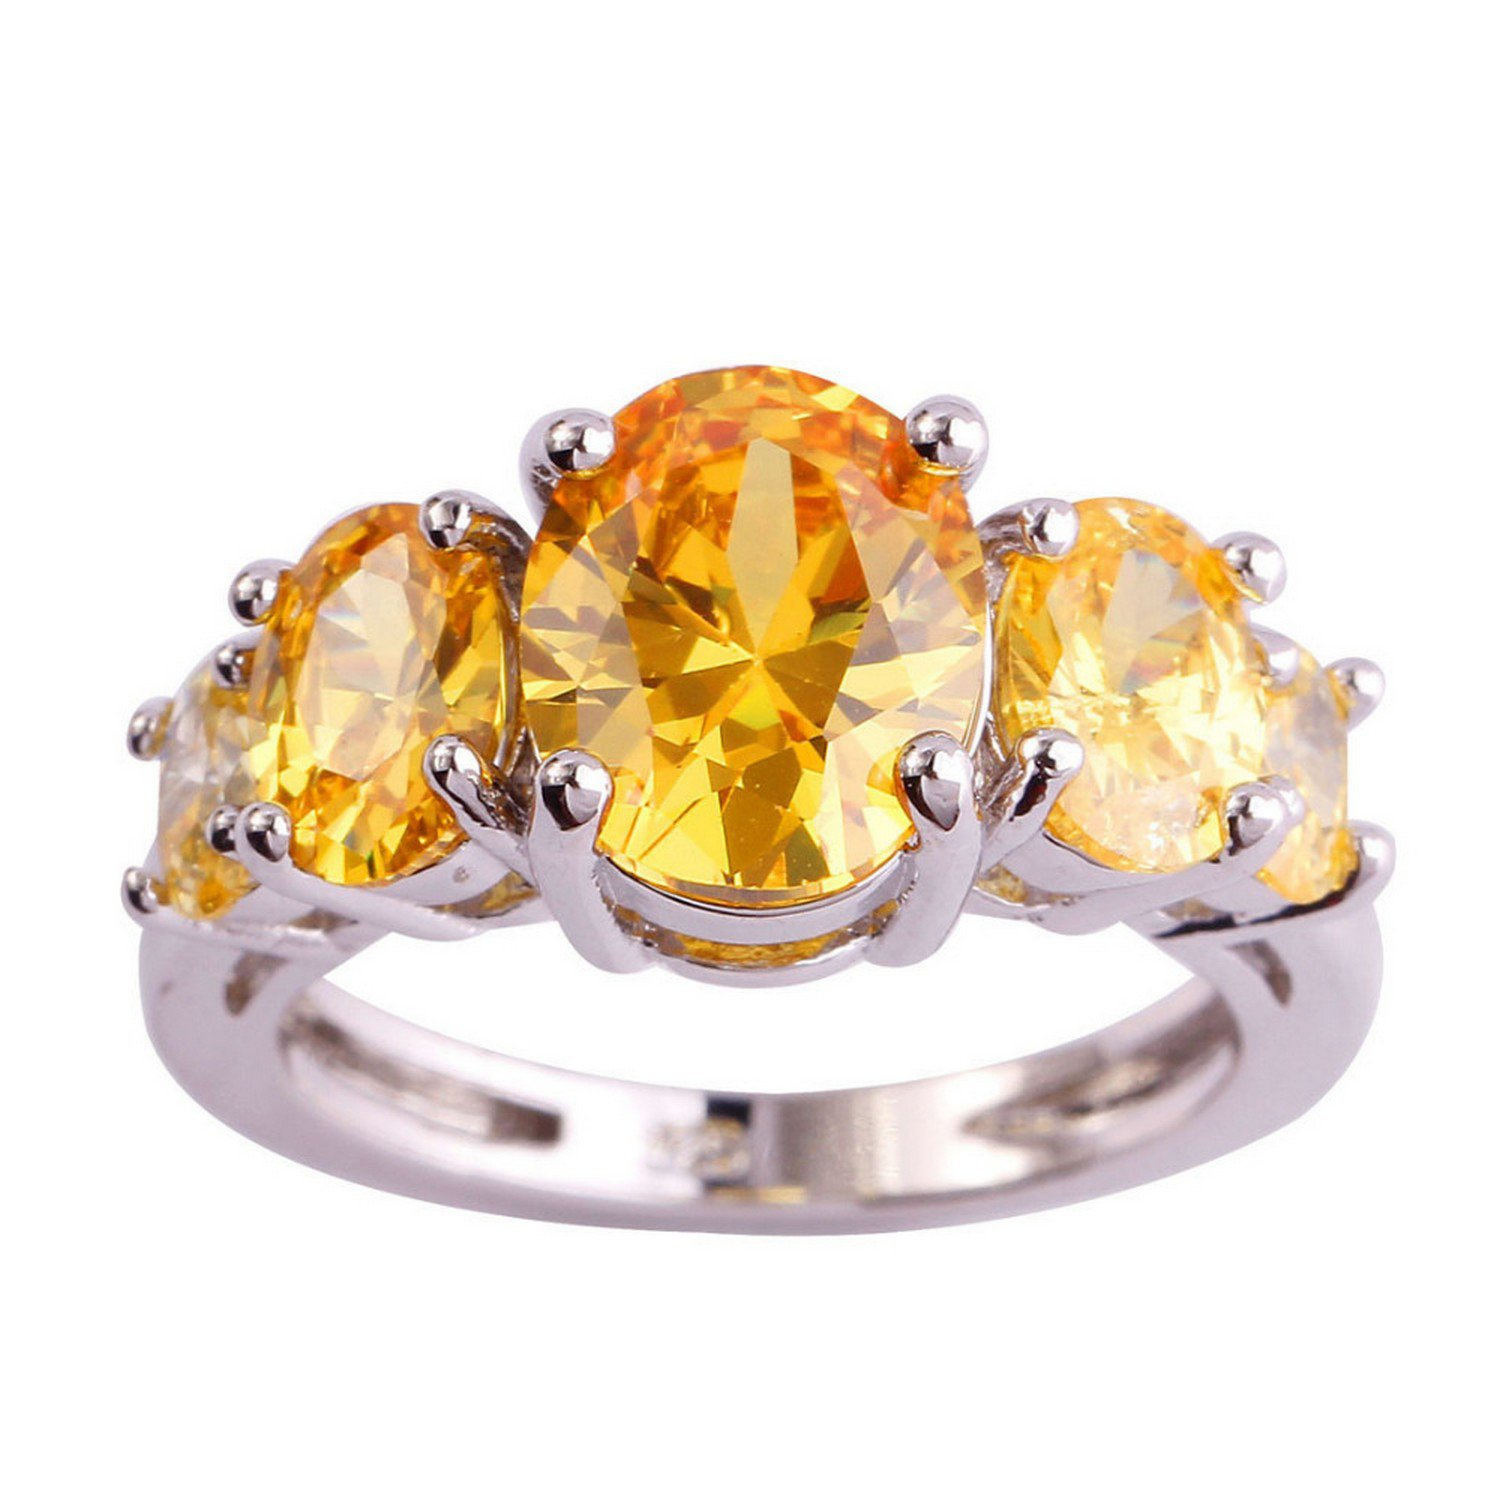 Gemmart Gorgeous Oval Cut Gold Silver Ring Size 6 7 8 9 engagement rings fashion ring sets